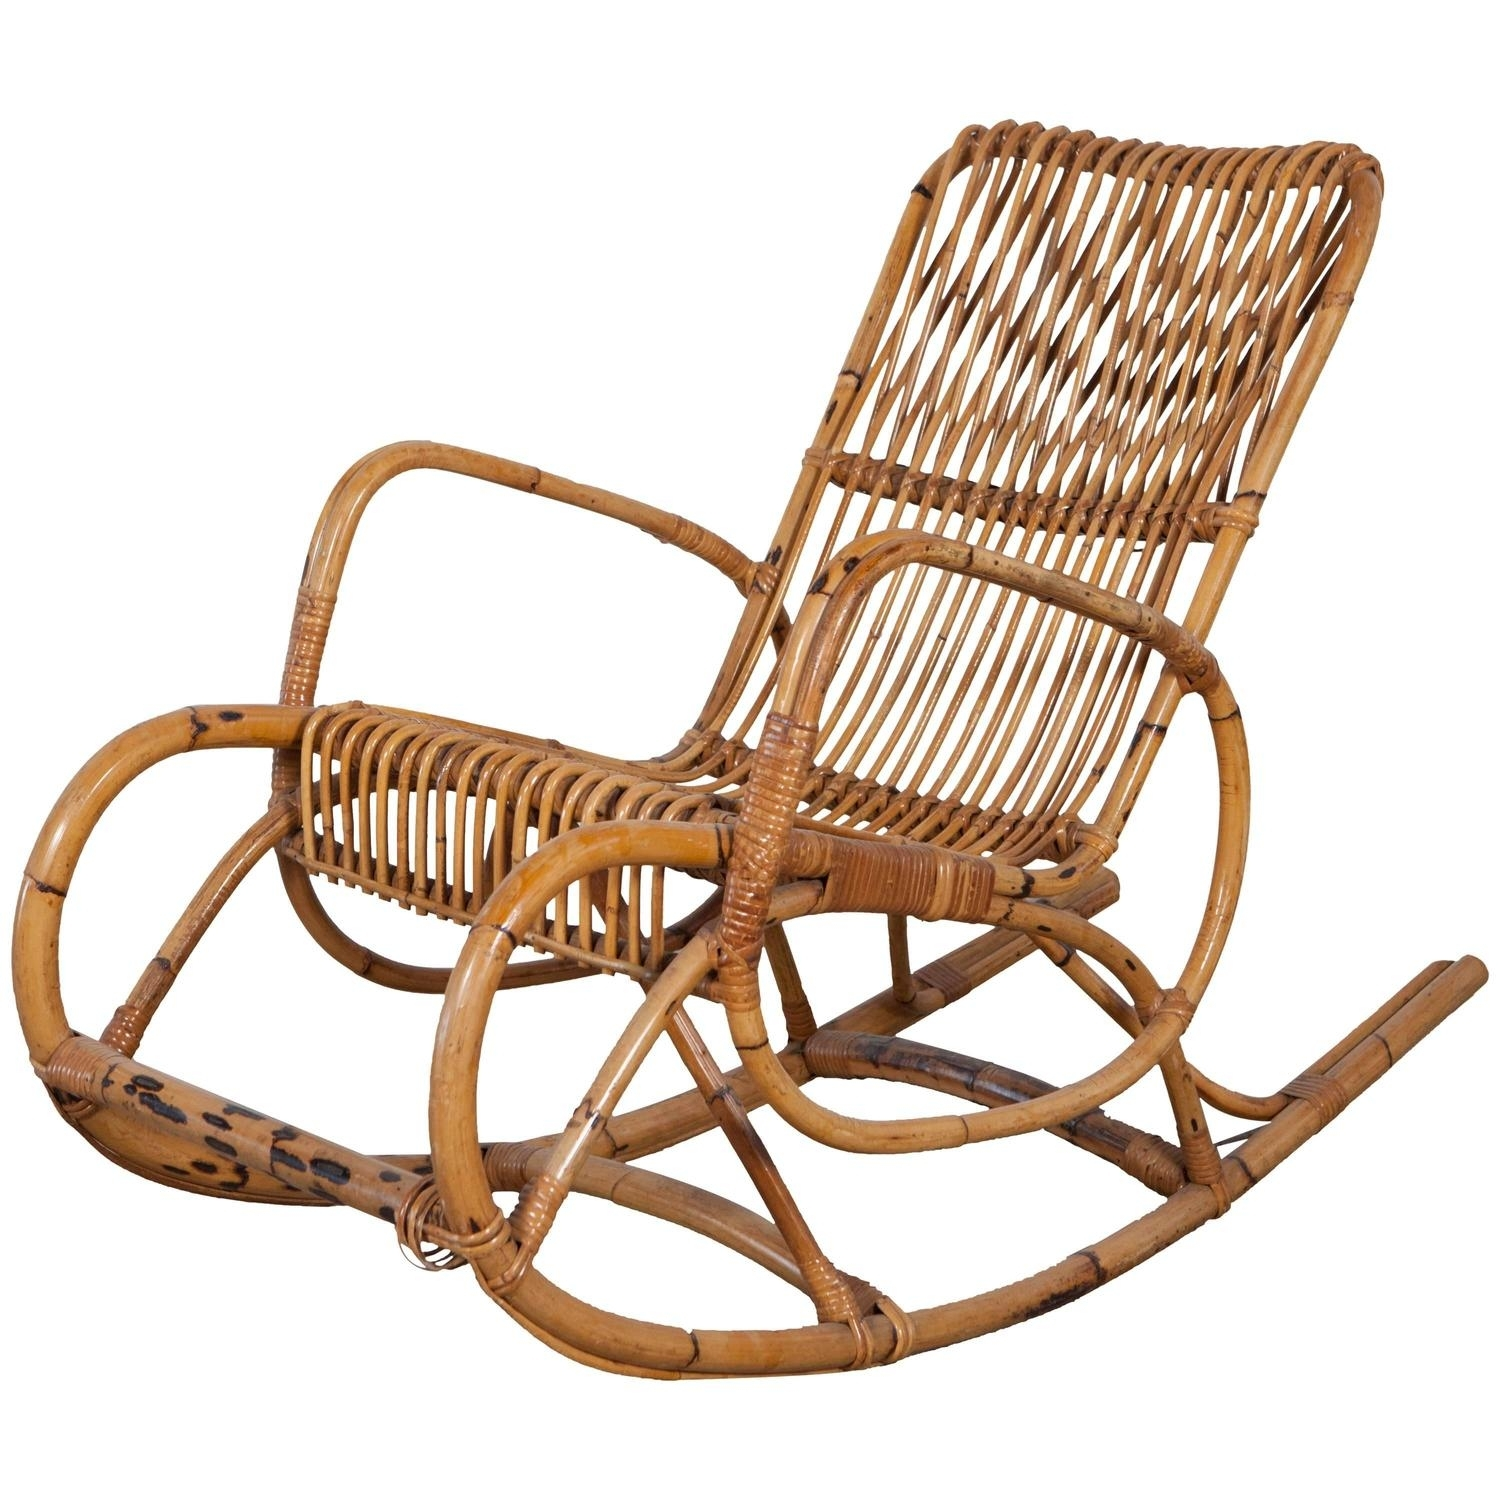 Vintage Italian Bamboo Rocking Chair With Square Arms At 1Stdibs With Antique Rocking Chairs (#15 of 15)